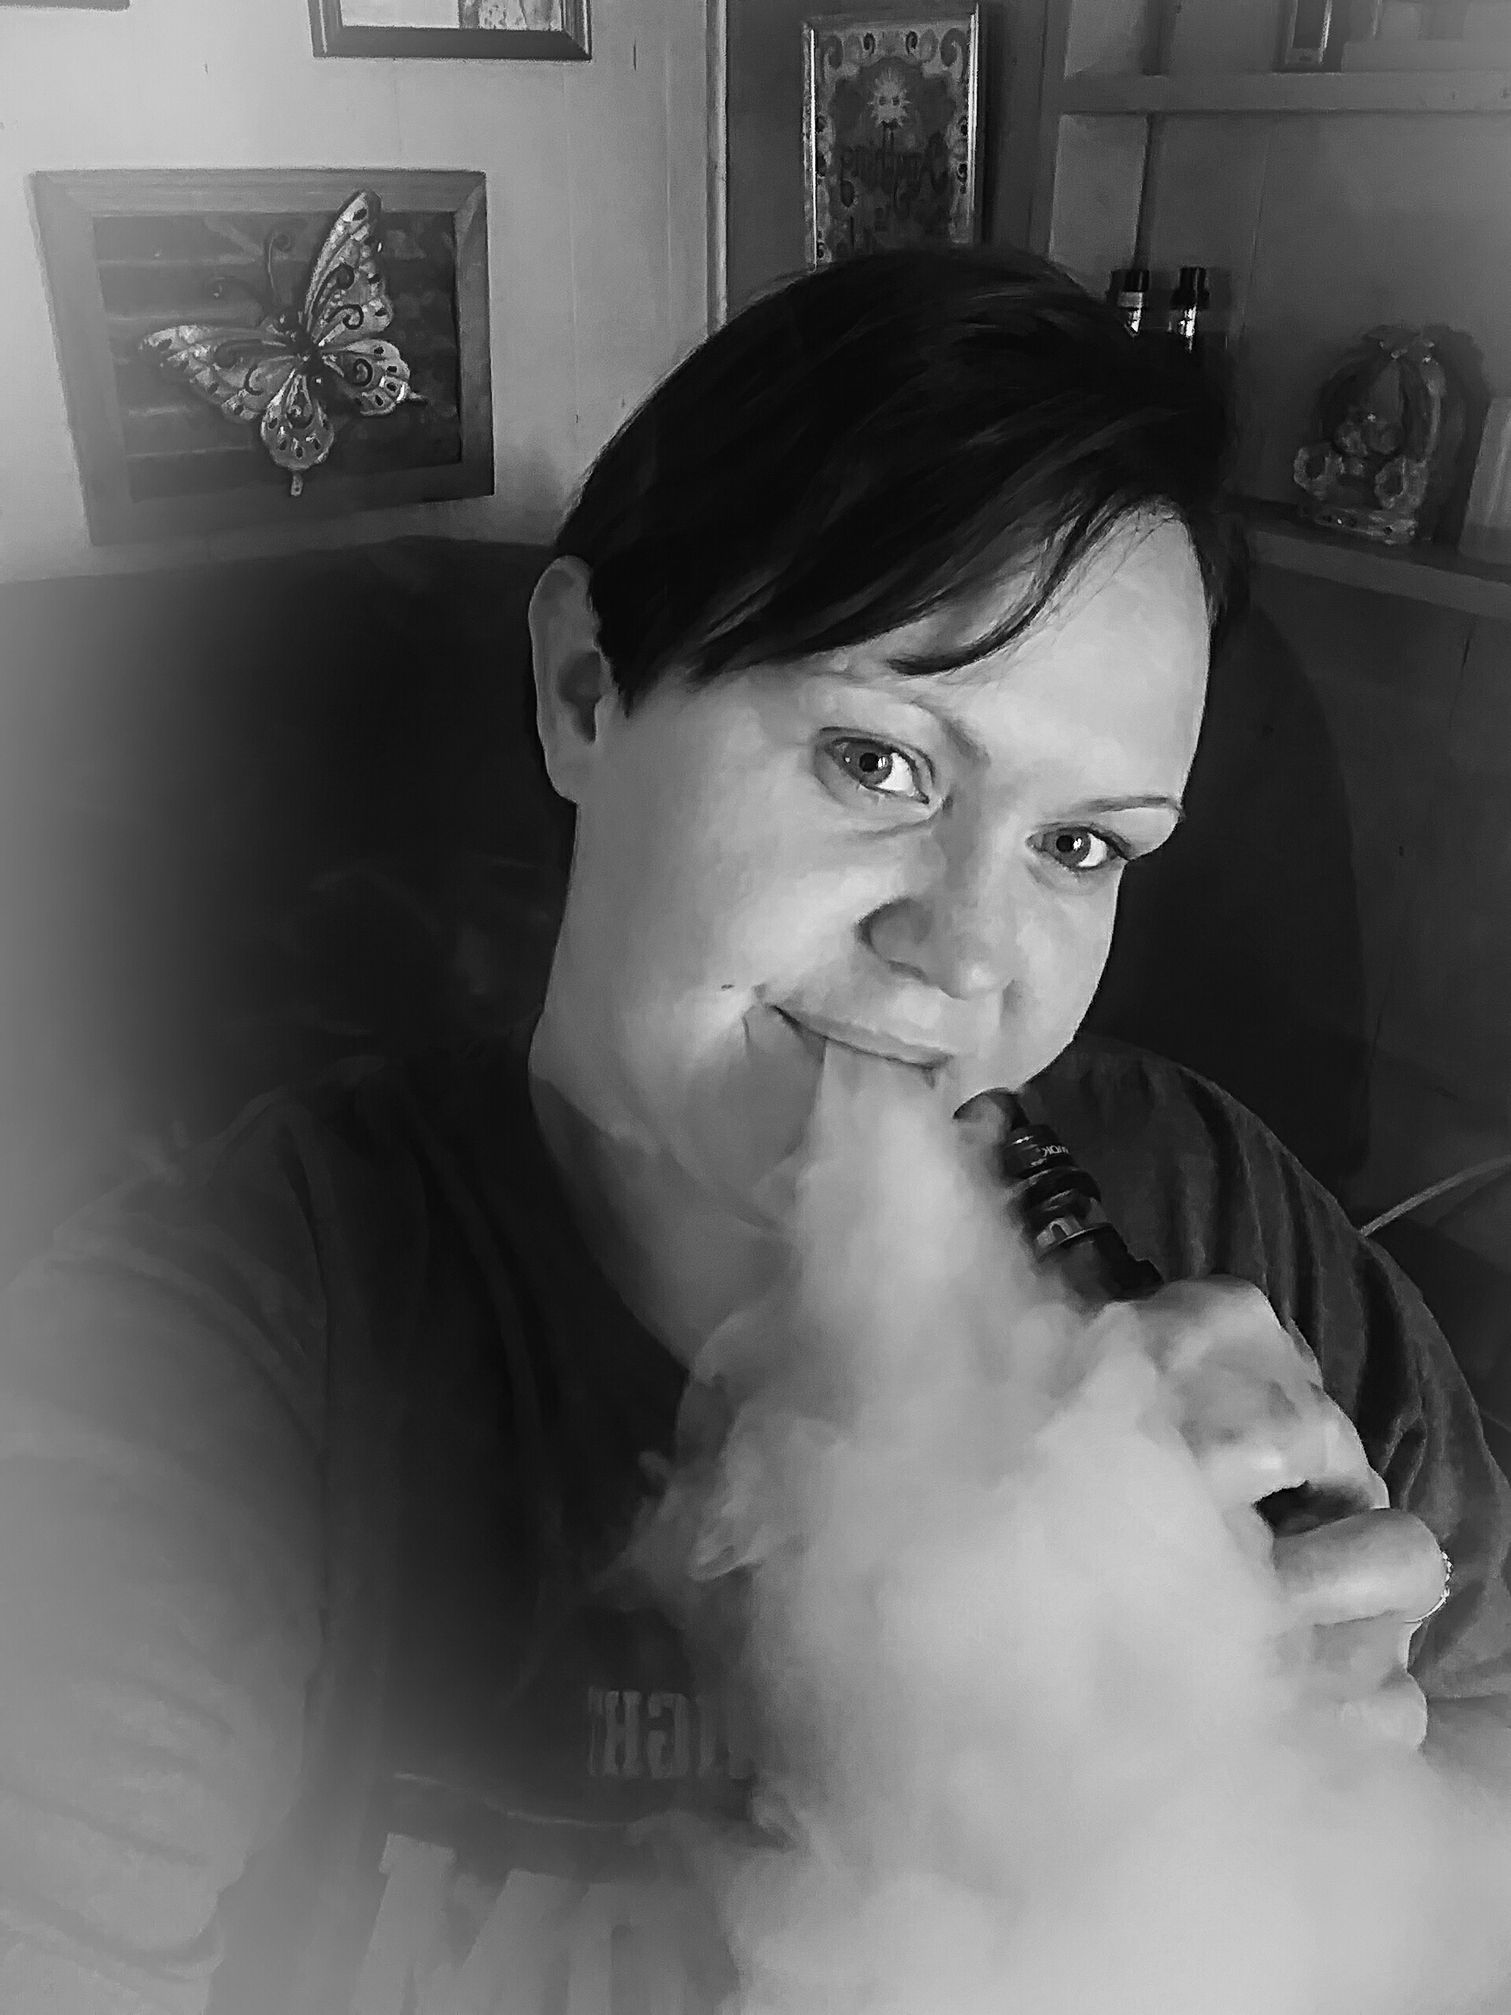 Amanda   It will be 3 years tomorrow (12/27/2017) smoke free and its all with the help of the great people of FCM. I'm most greatful for y'all just giving me the chance to be a mom and wife longer and i can now actually breath to enjoy it all...THANKS FCM